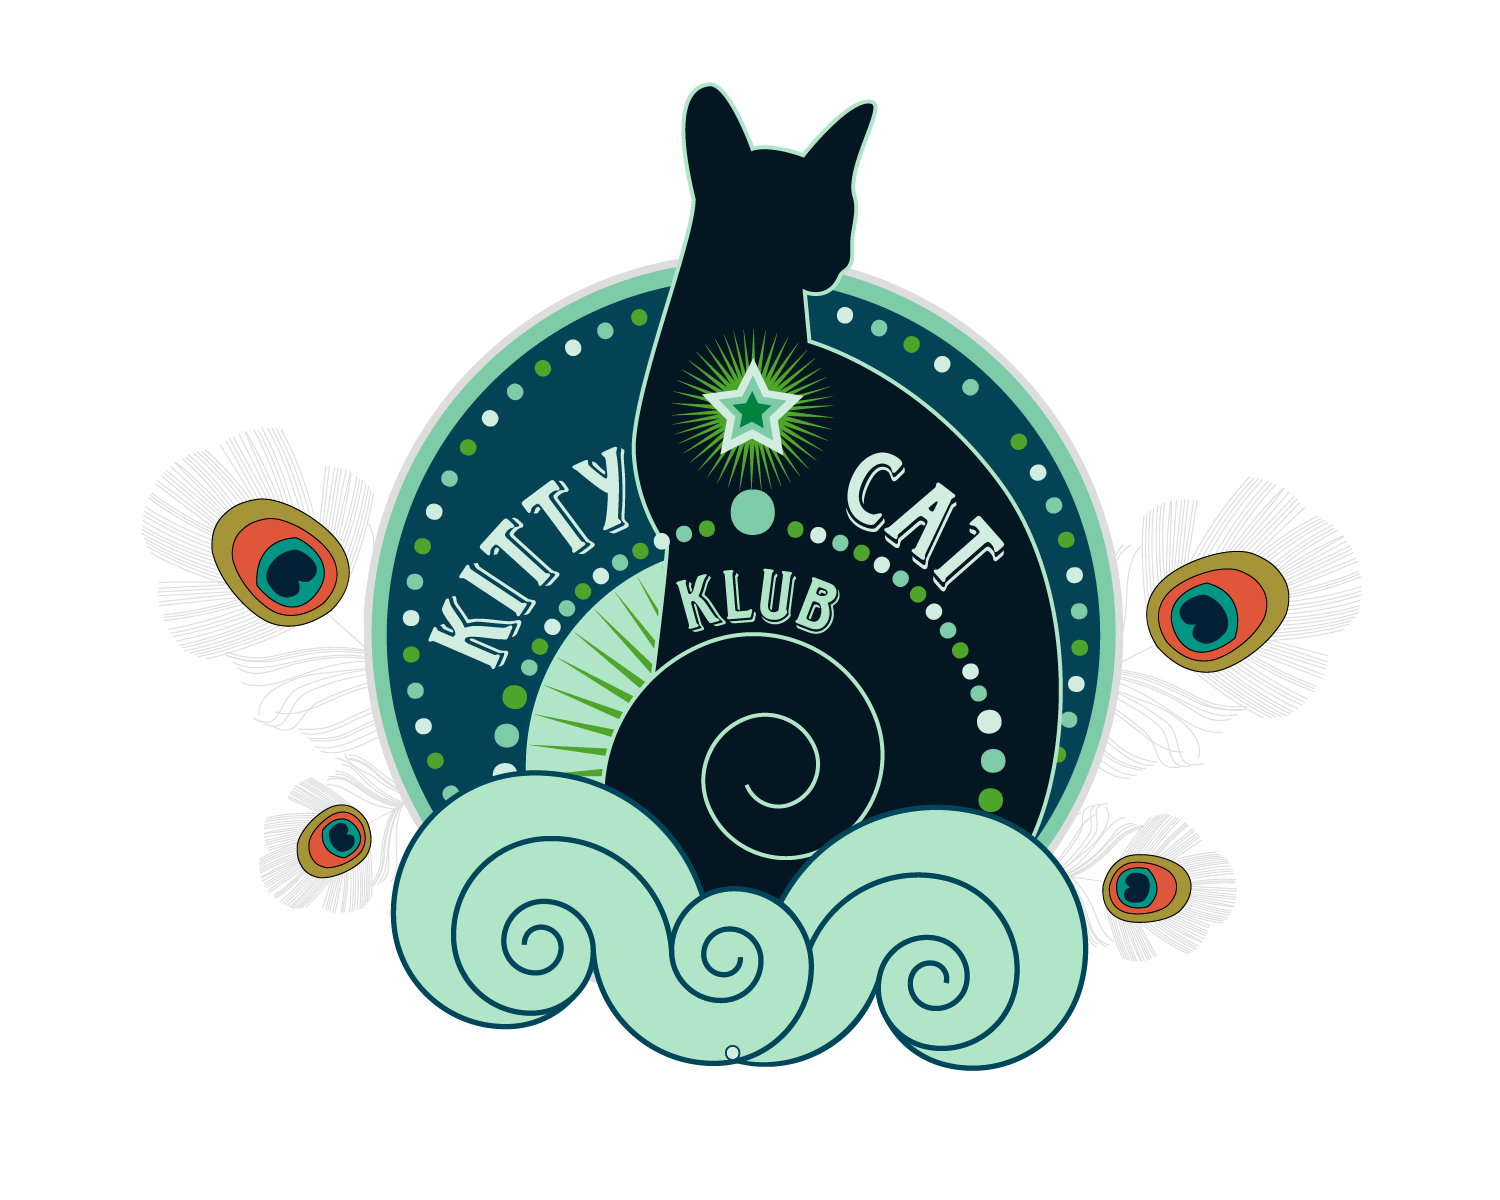 Kitty Cat Klub